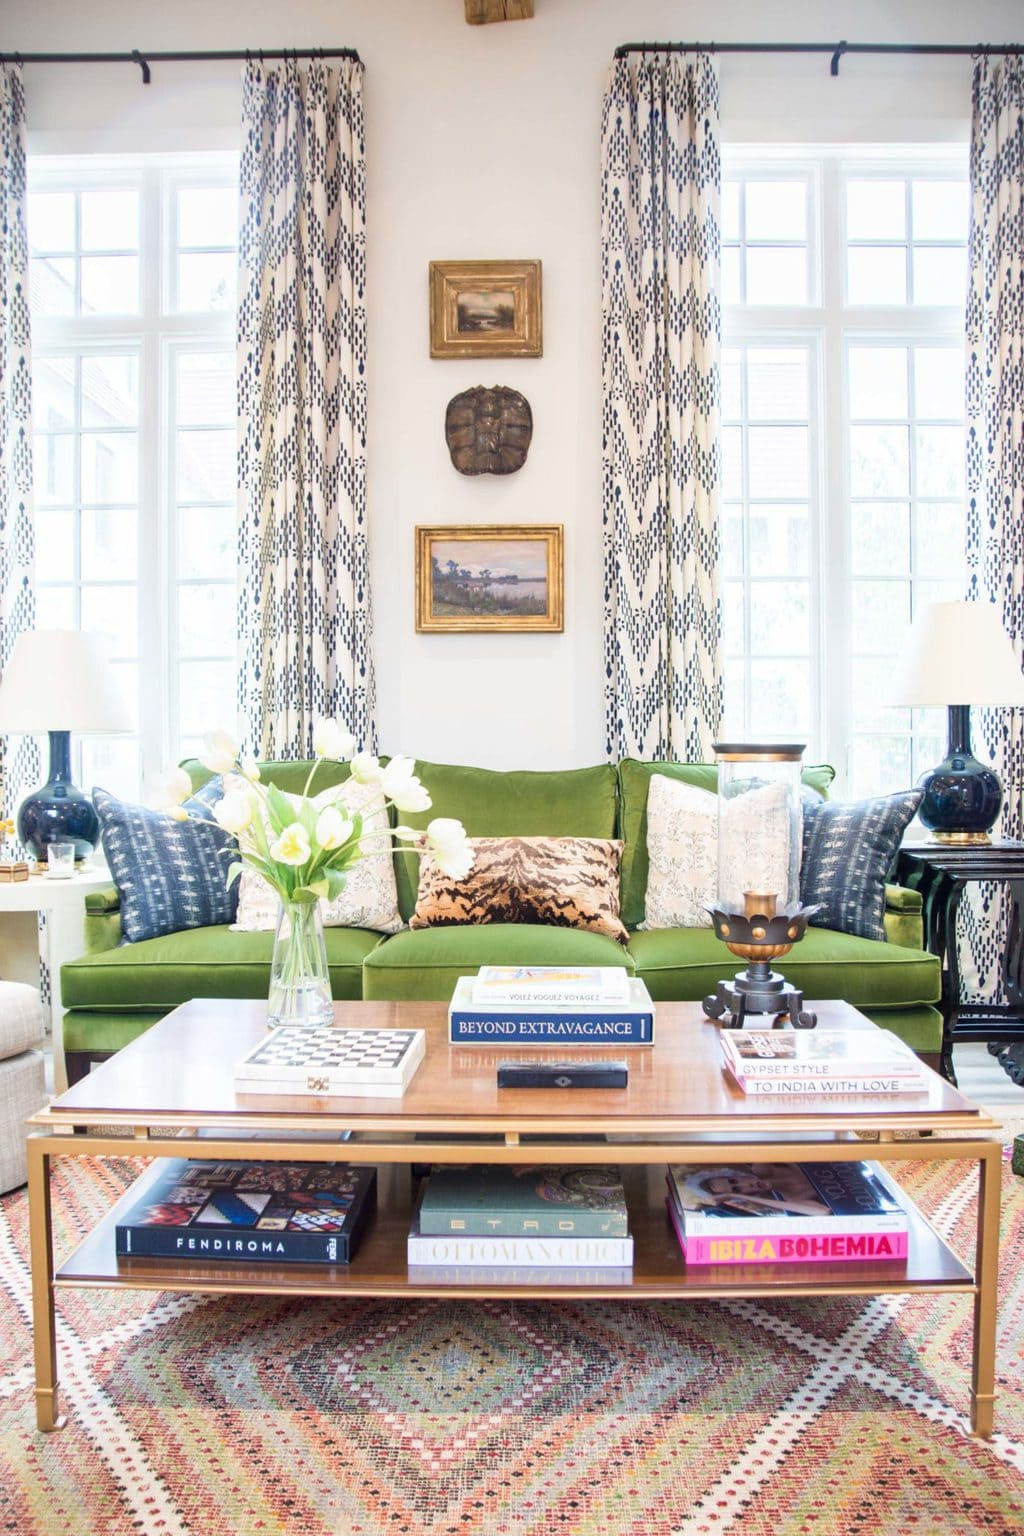 Serenbe Designer Showhouse 2017 on Thou Swell @thouswellblog - Thou on designer charlotte moss, designer dining room, designer bathroom, designer lamps, designer rugs, designer chairs, designer show homes, designer fabric, designer bunny williams, designer paint colors, designer flowers,